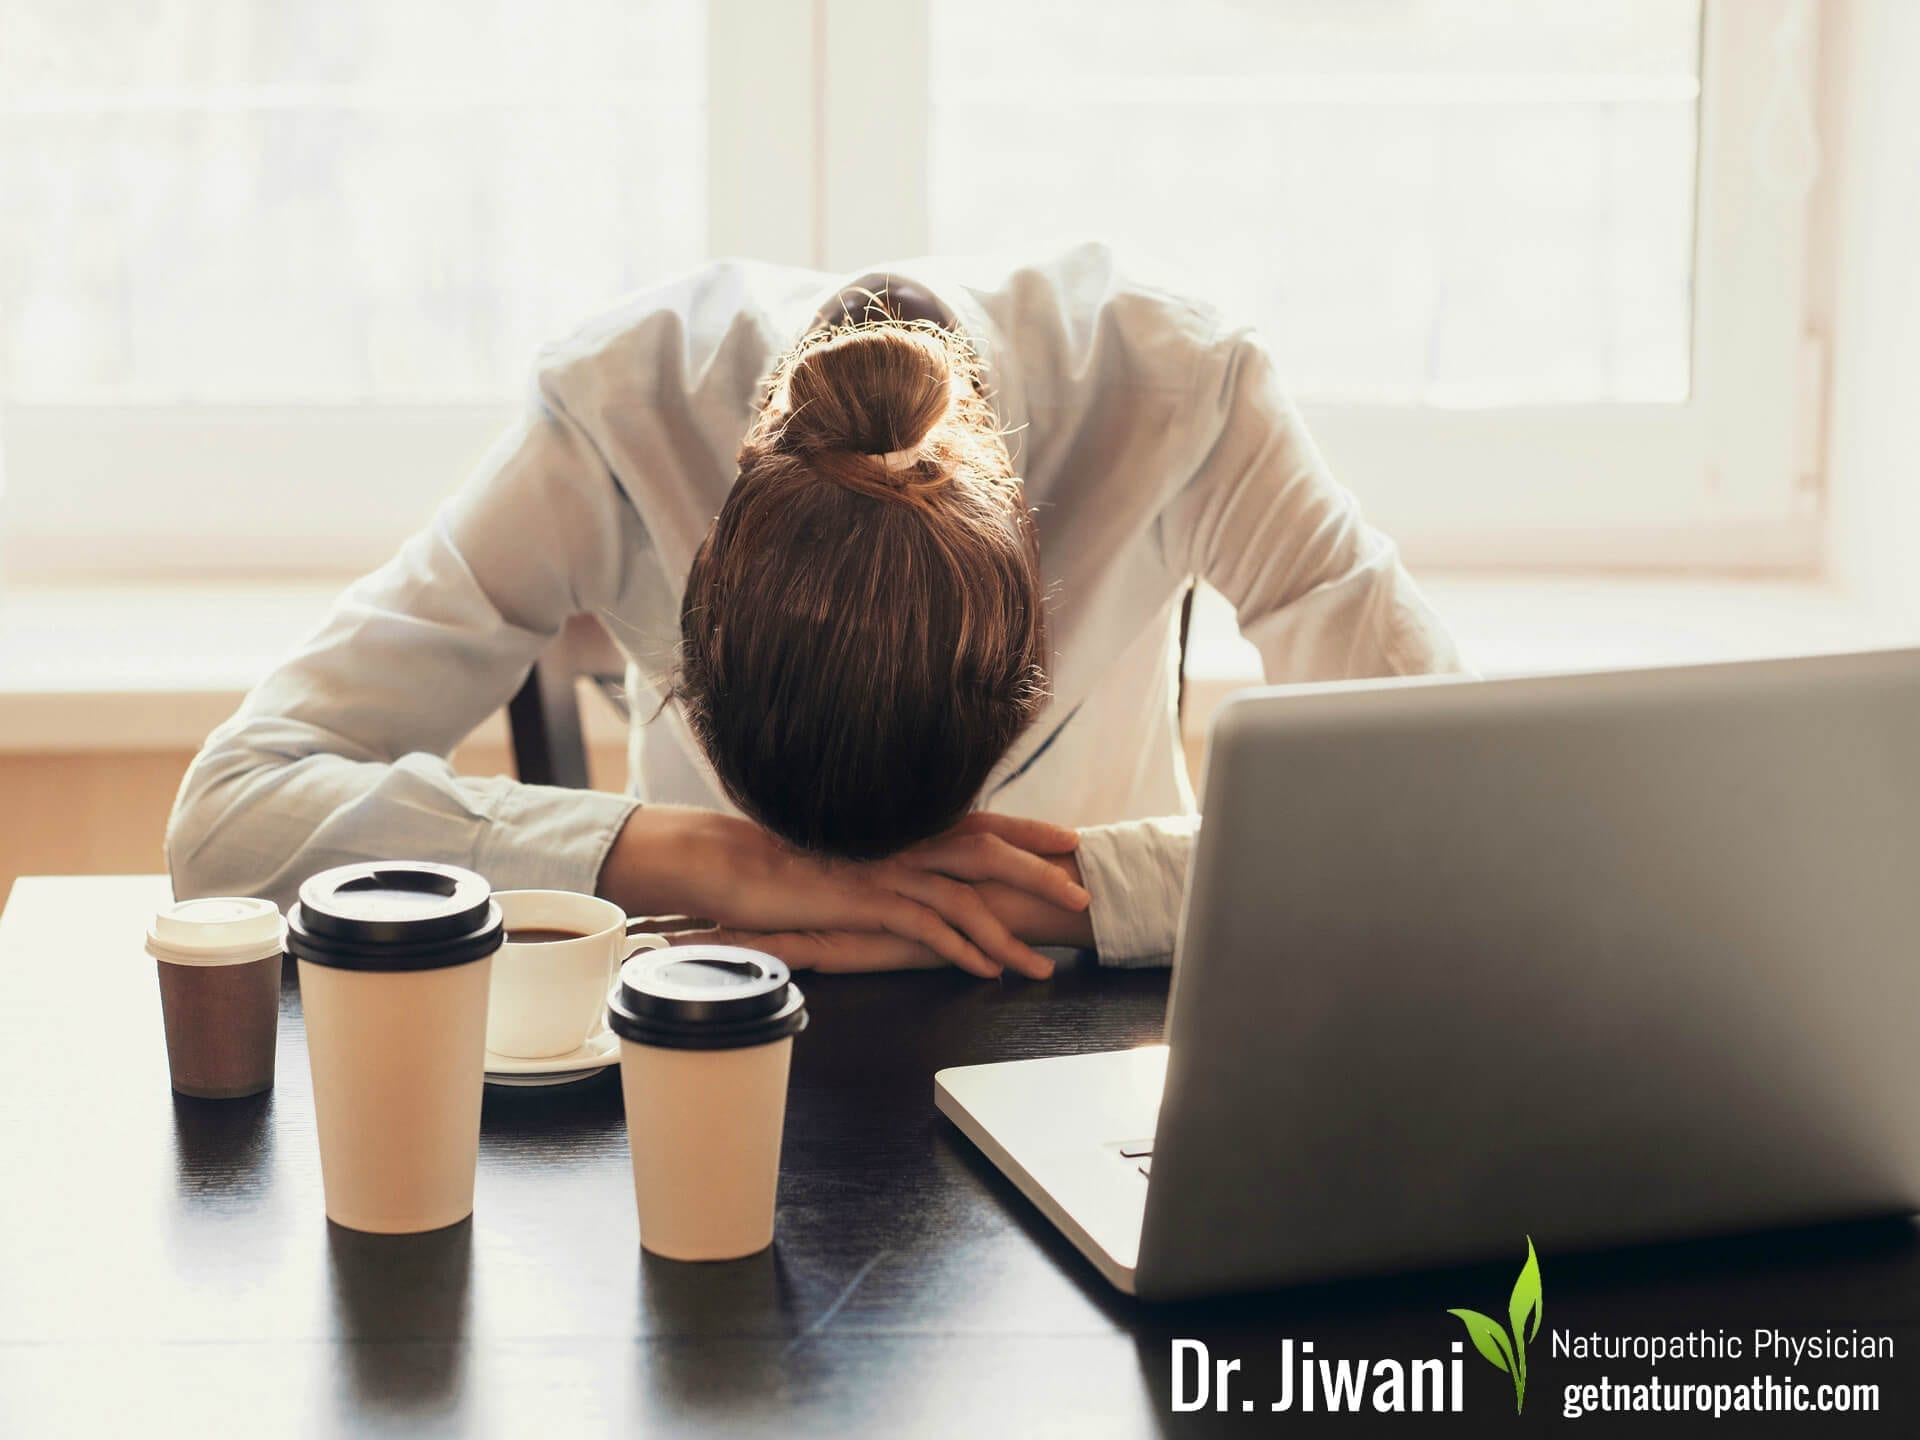 DrJiwani Fatigue Sugar the Sweet Poison The Alarming Ways Sugar Damages Your Body & Brain* | Dr. Jiwani's Naturopathic Nuggets Blog